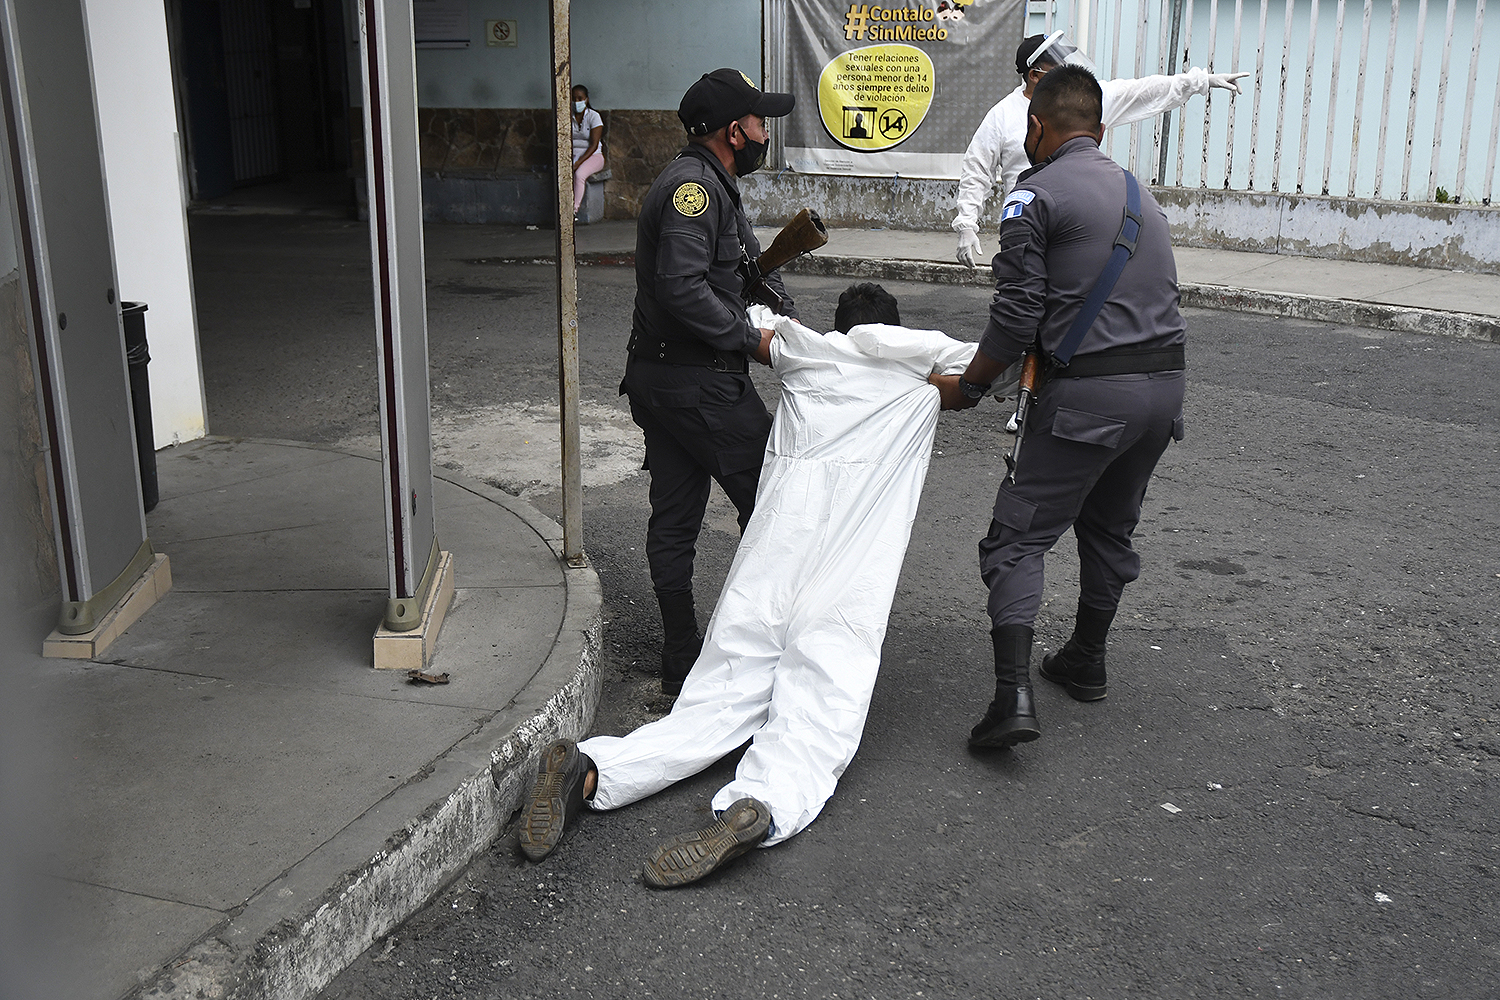 Penitentiary system guards carry an inmate with symptoms related to the coronavirus to the COVID-19 unit of San Juan de Dios Hospital in Guatemala City on July 13. JOHAN ORDONEZ/AFP via Getty Images